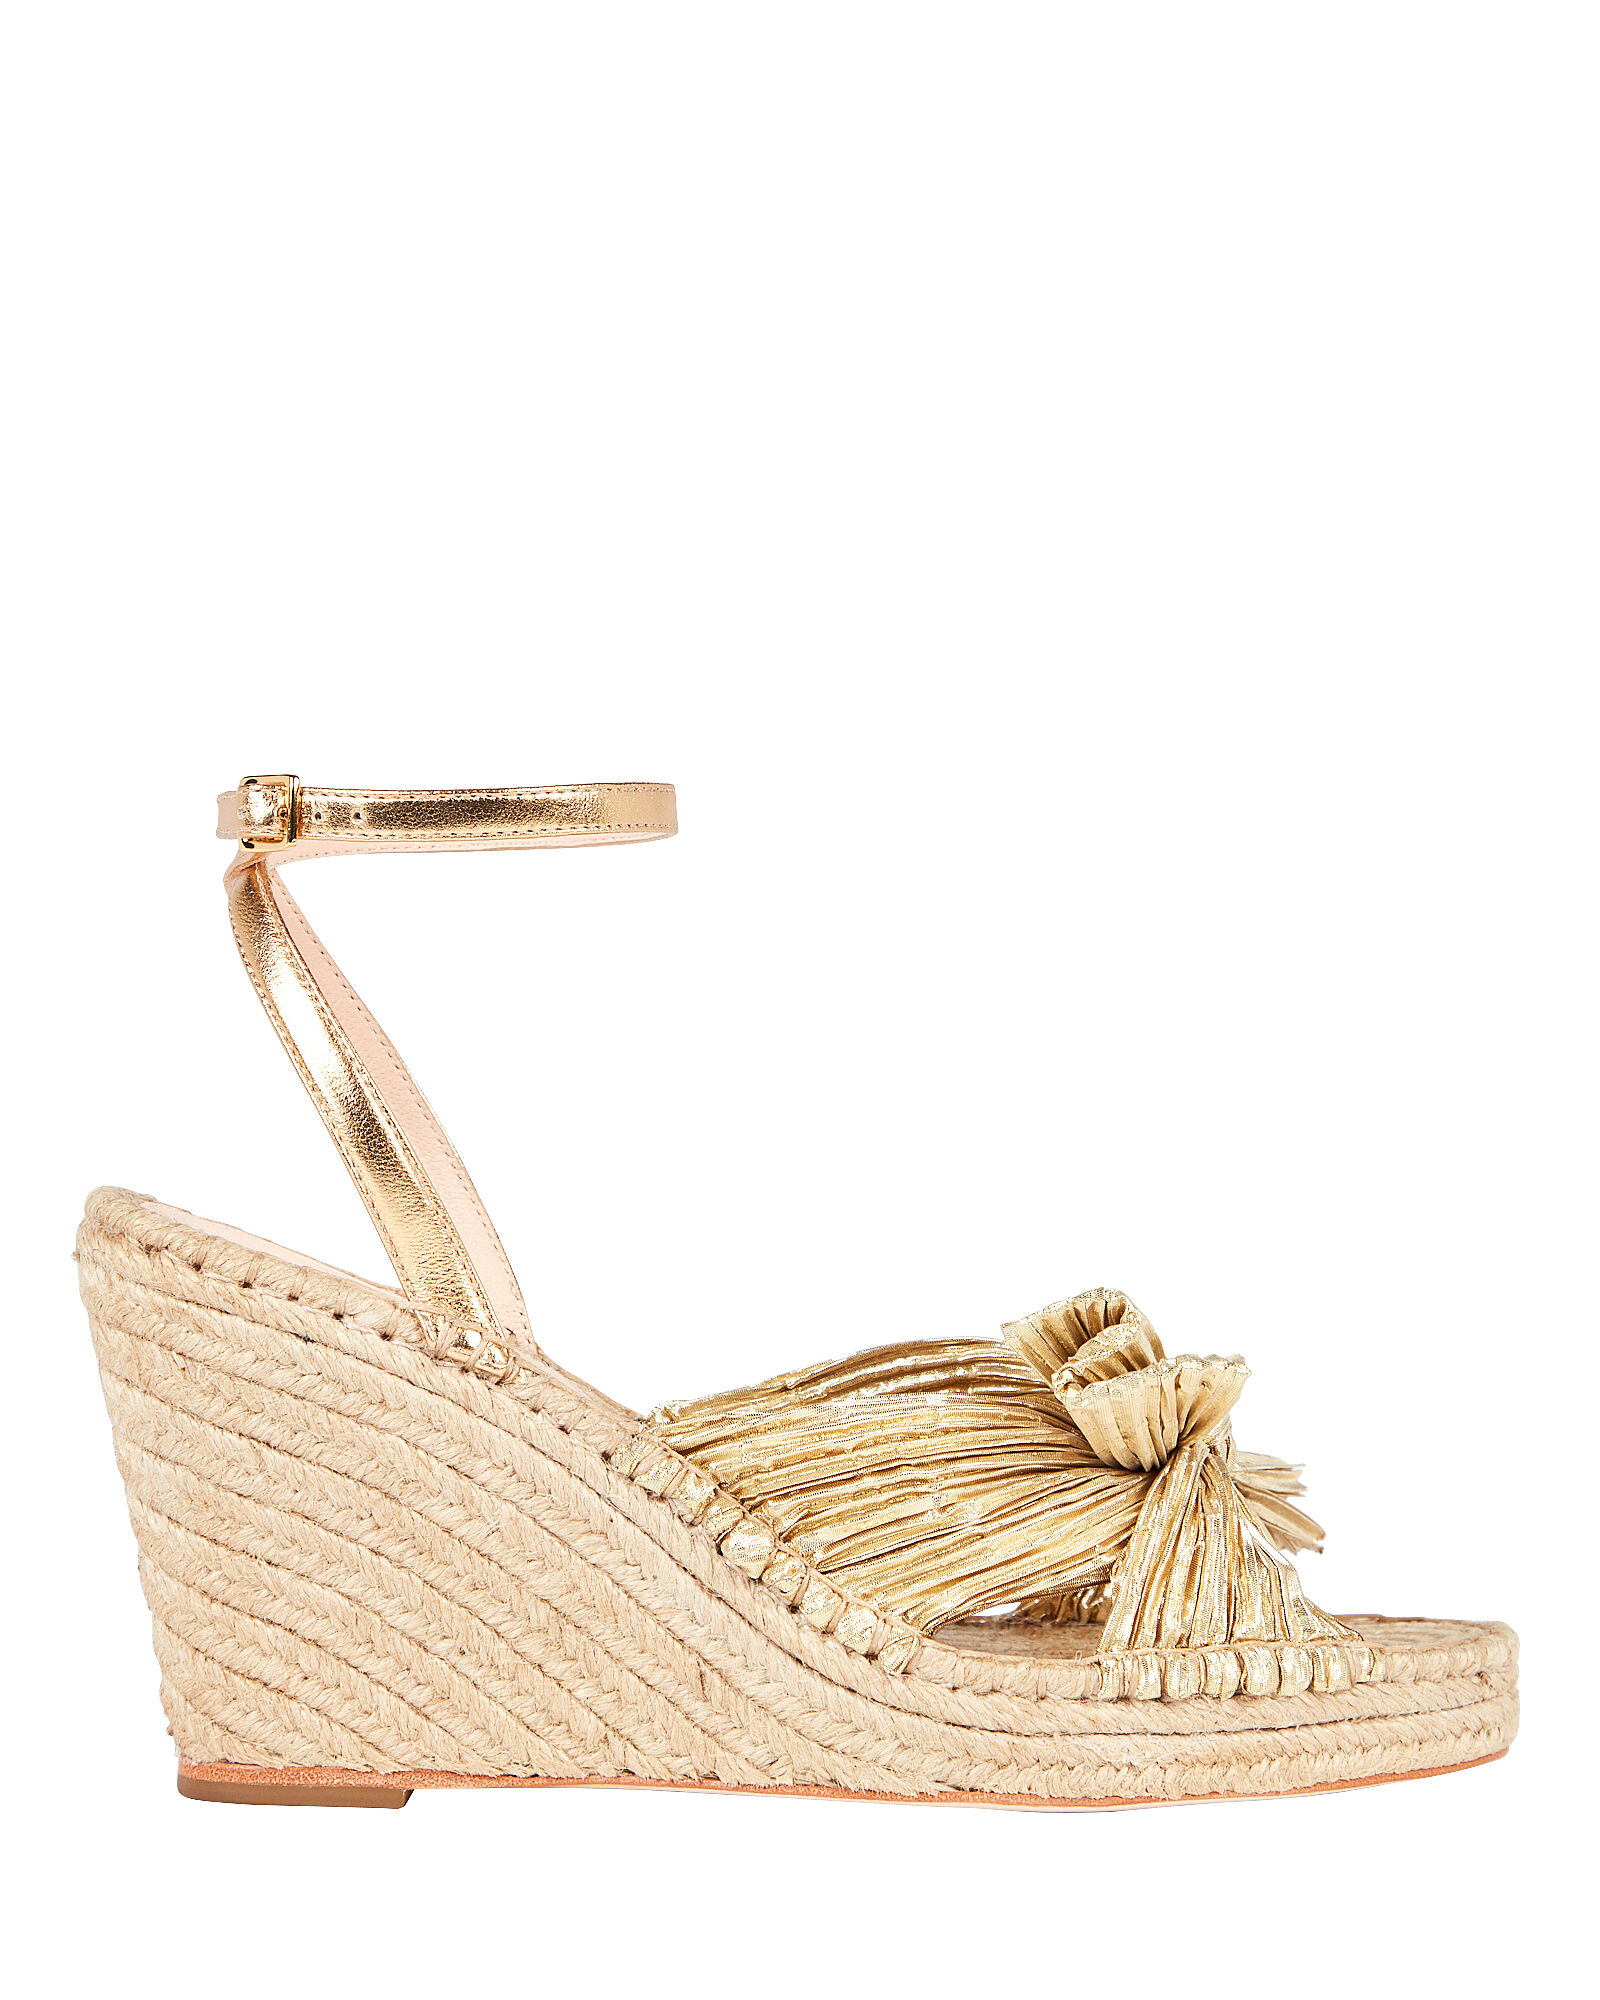 Charley Knotted Espadrille Wedges, GOLD, hi-res